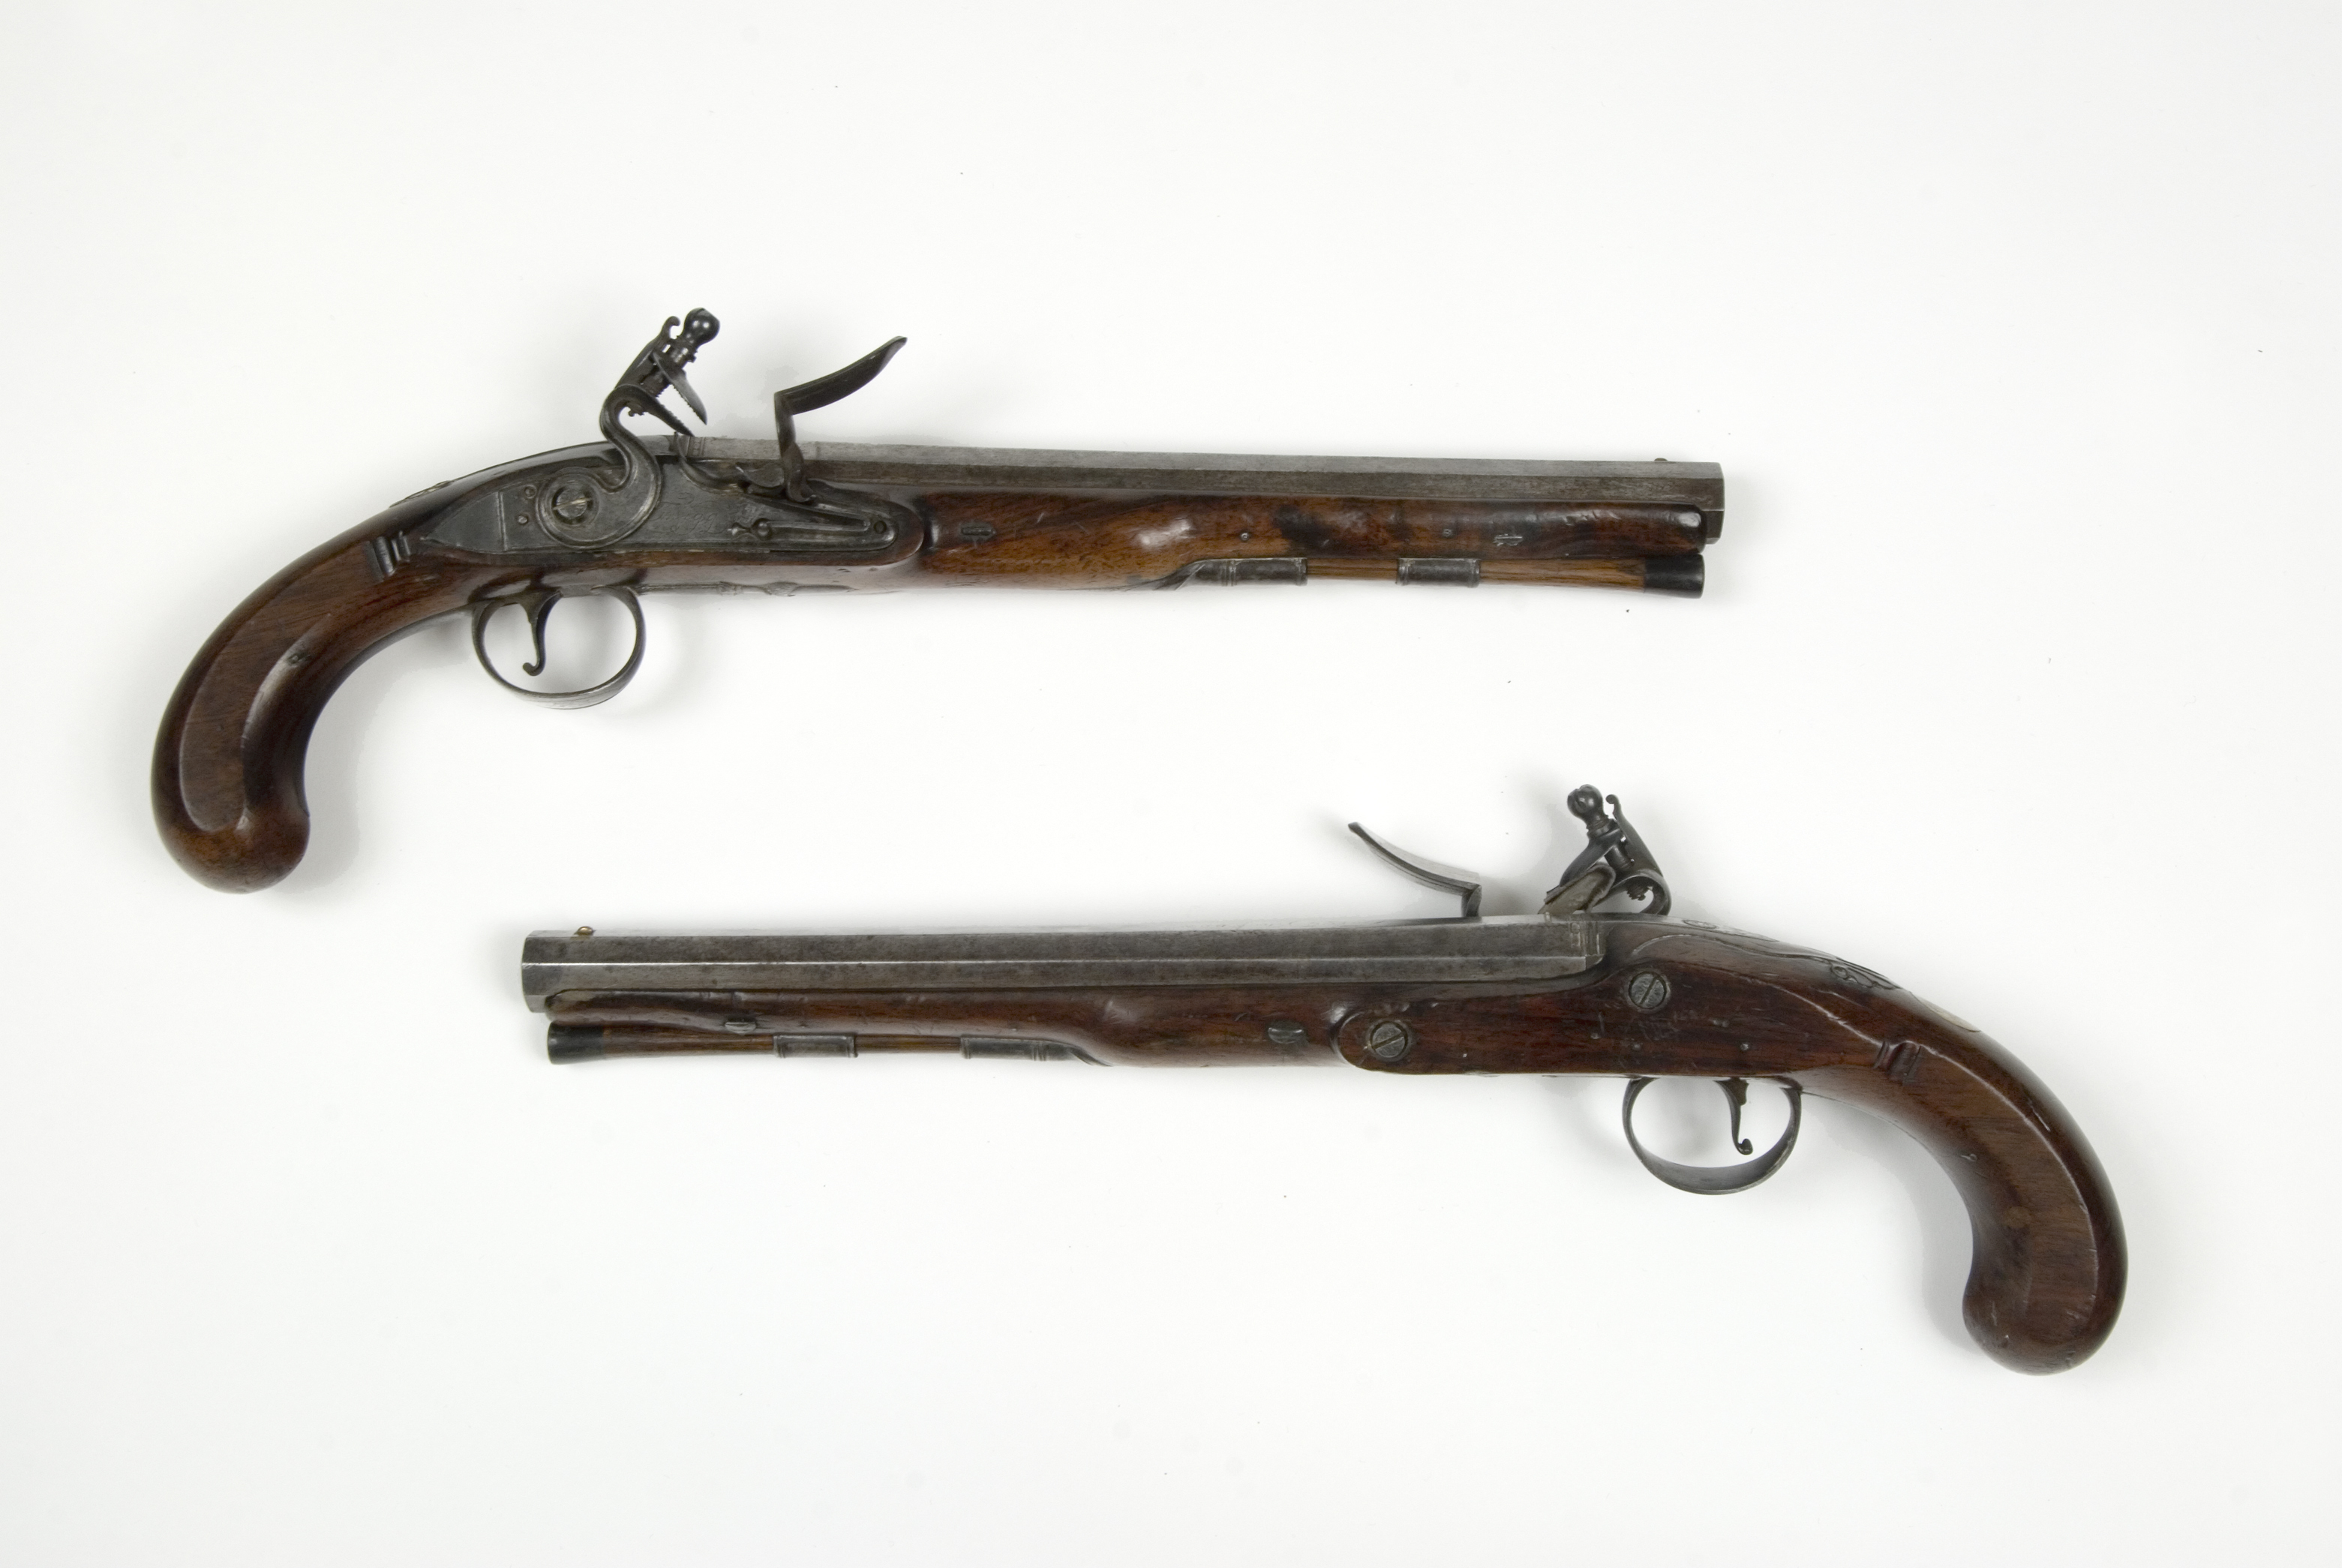 Richard Clough Anderson horseman's pistols made by John Twigg, ca. 1775